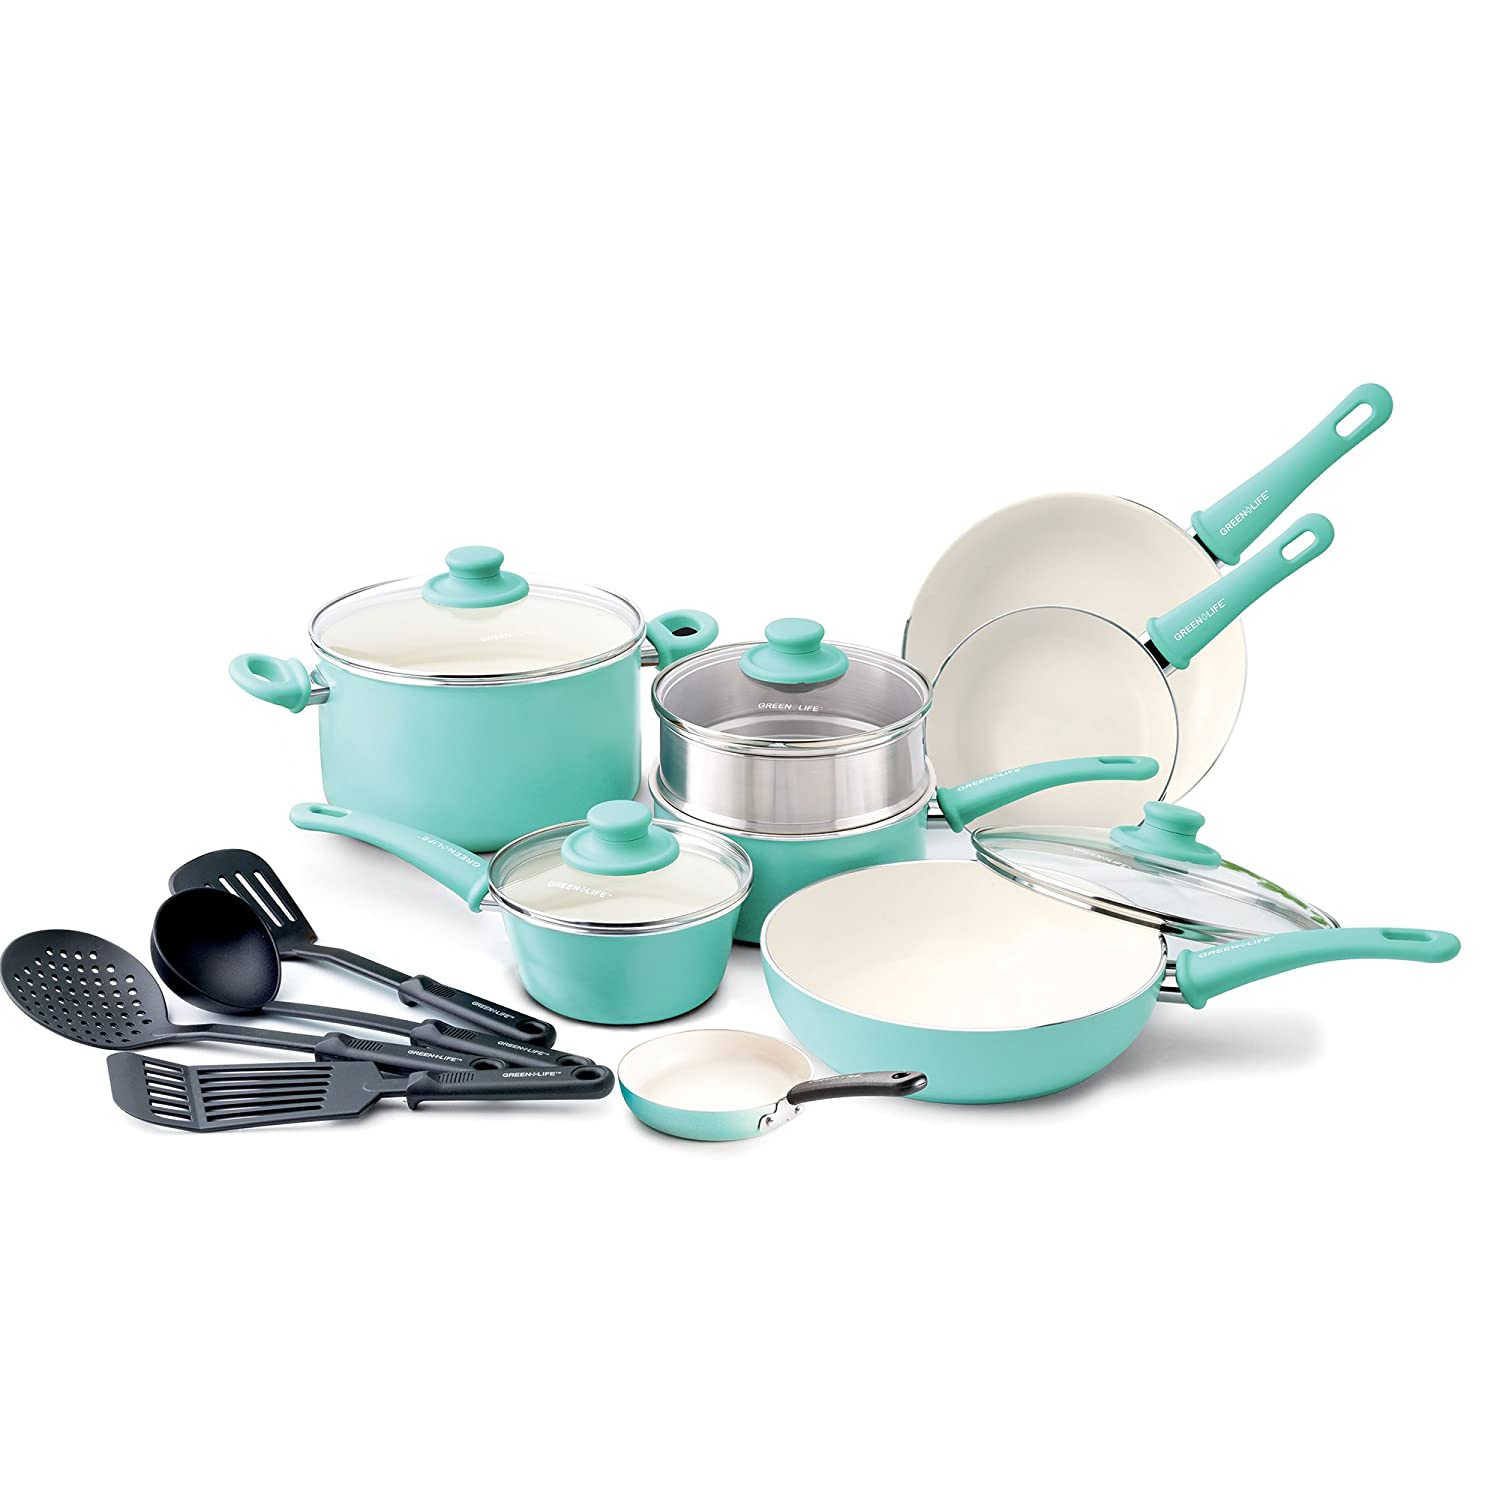 Amazon.com: Cookware Sets: Home & Kitchen: Nonstick Cookware Sets & More